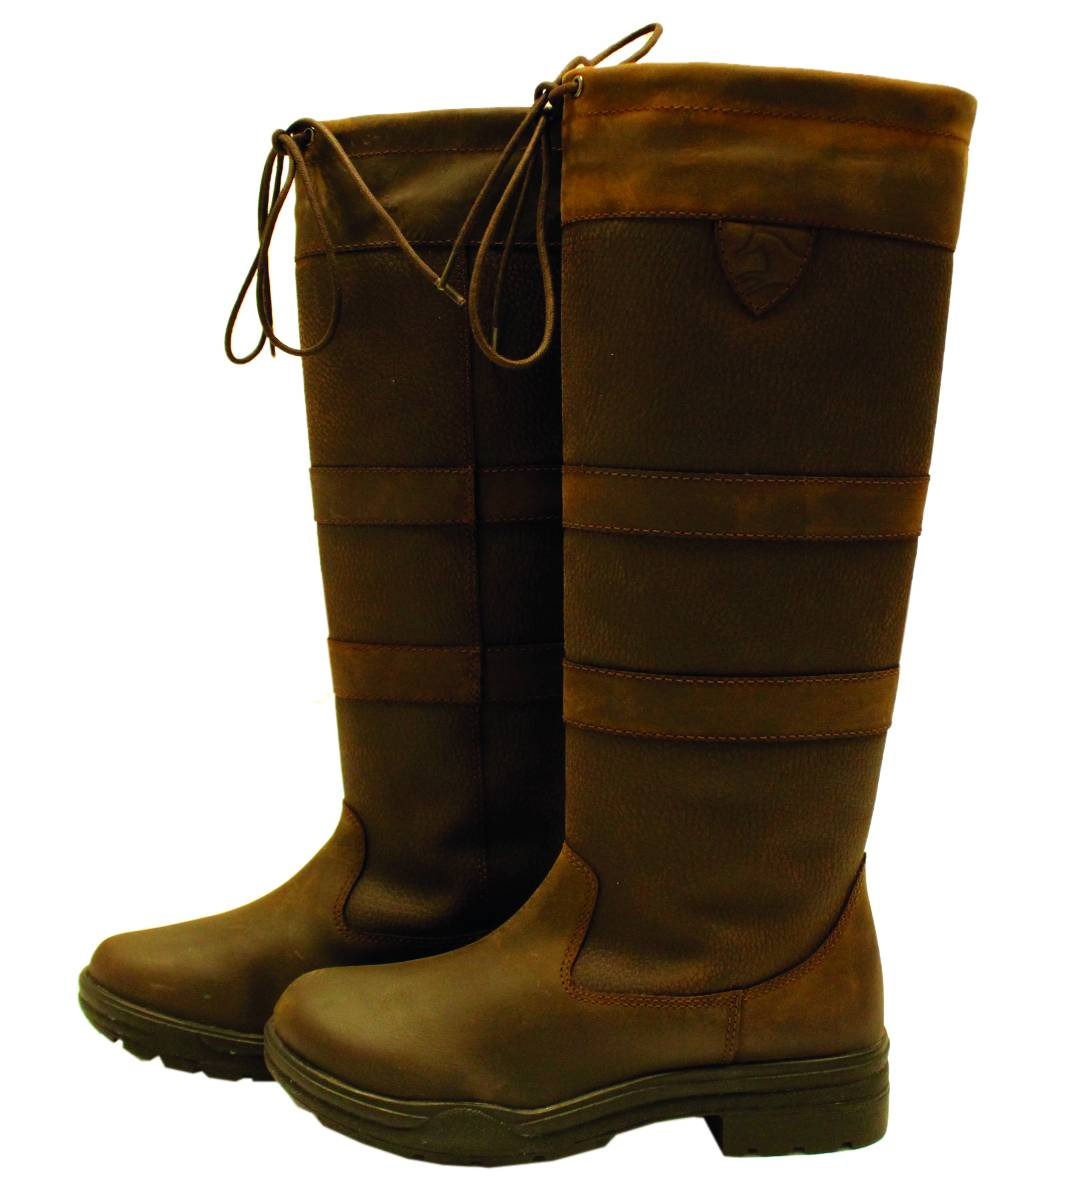 Horseware Tall Country Boots - Ladies